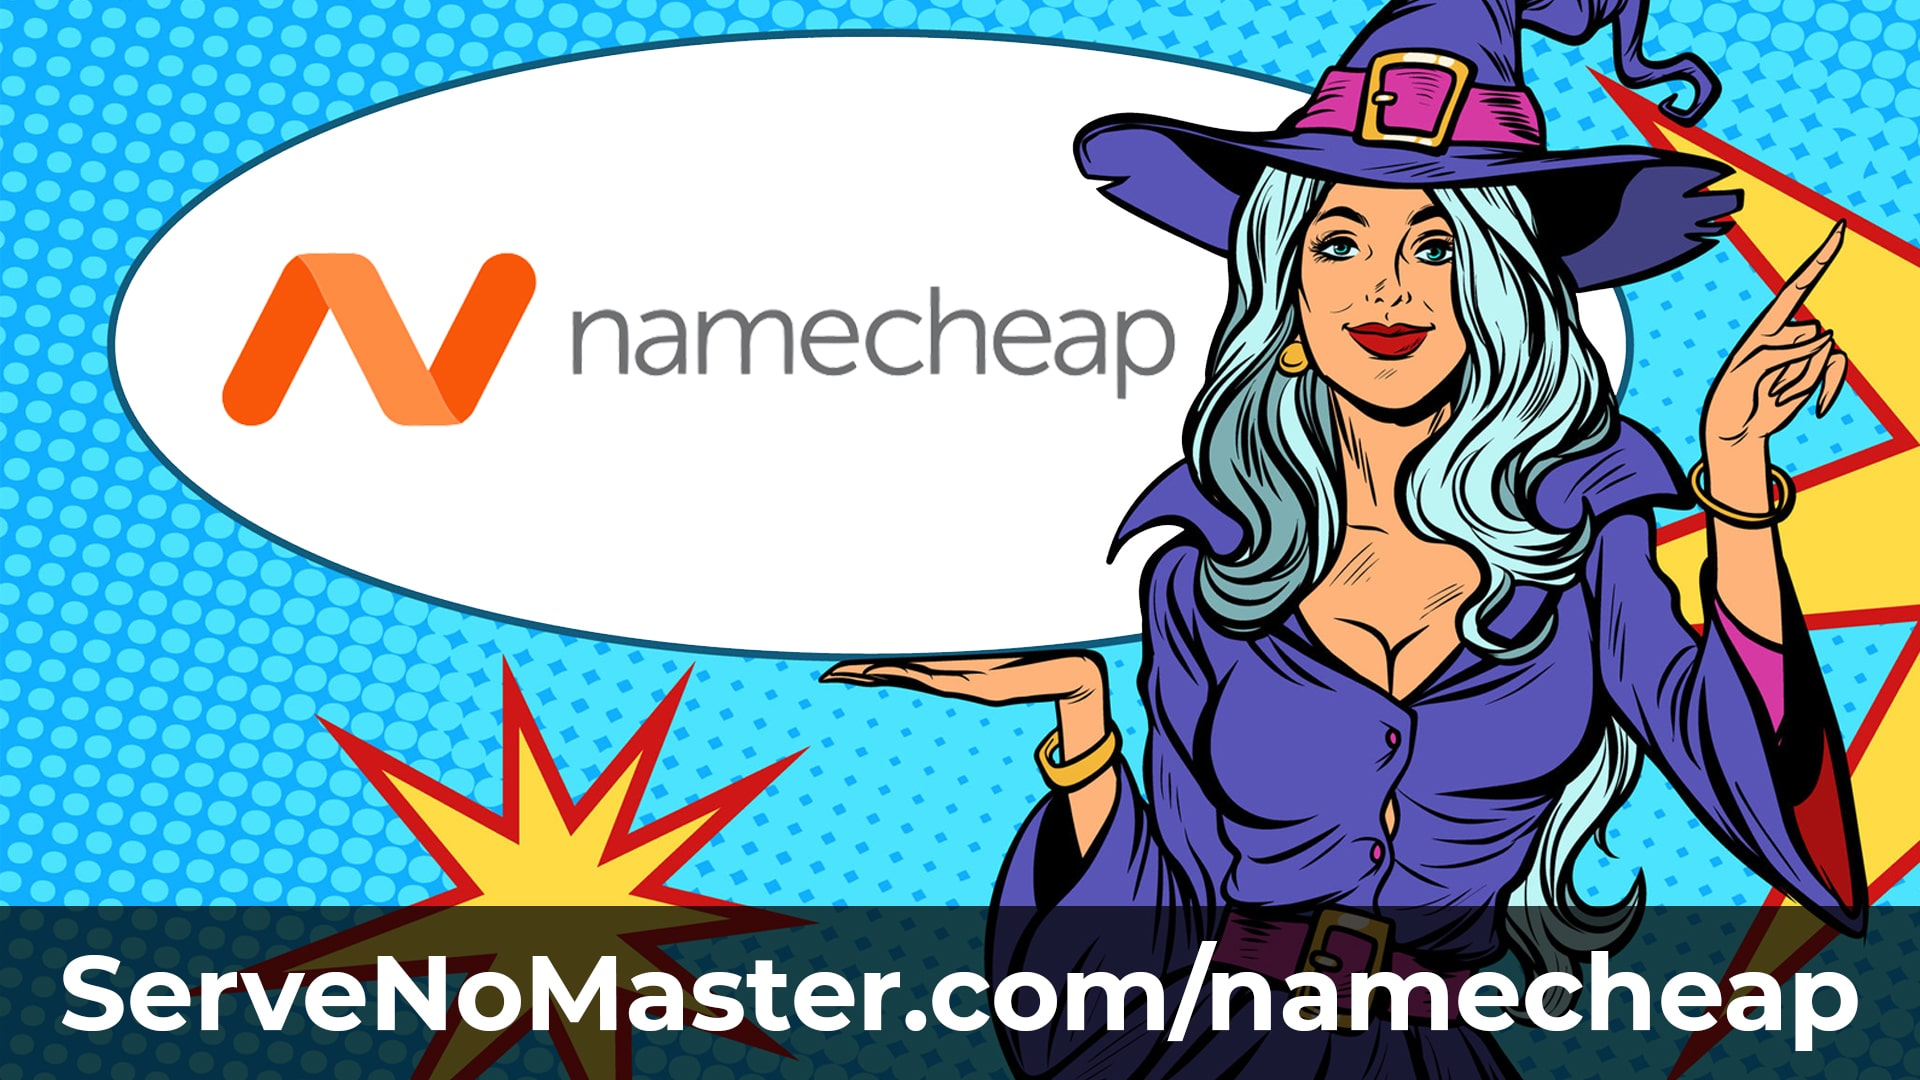 namecheap banner animated witch new domain name